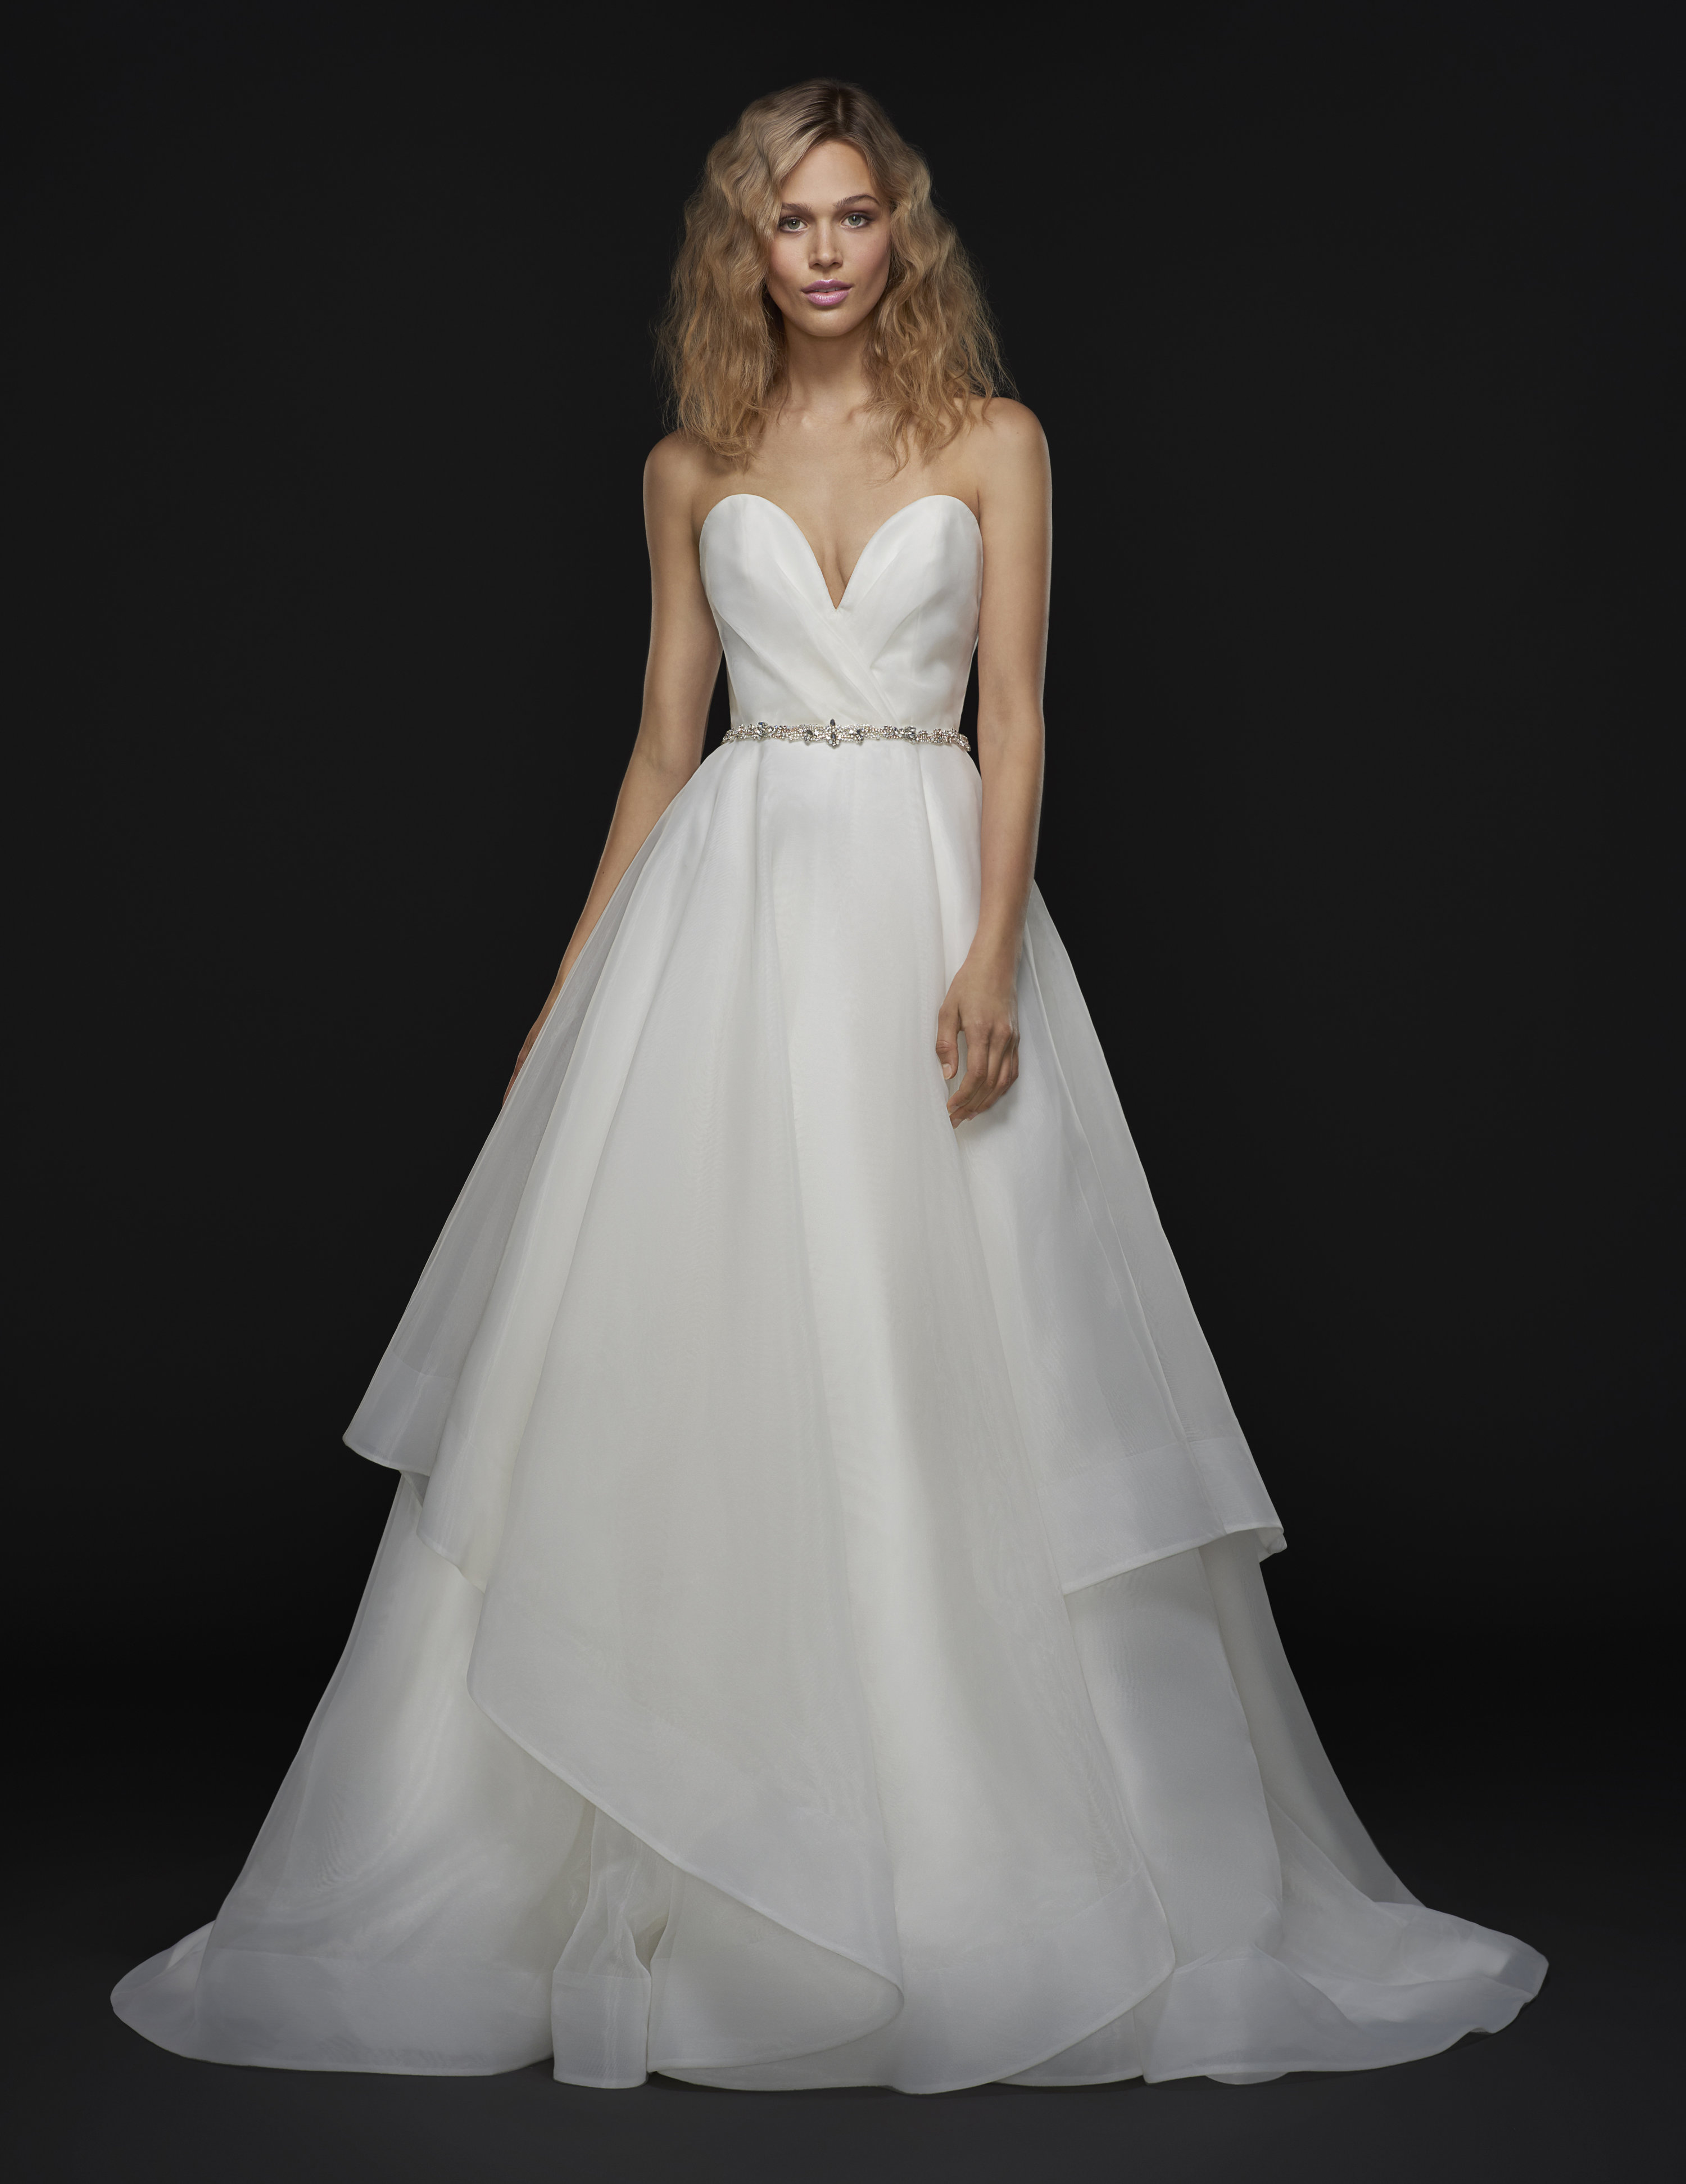 Bridal Gowns and Wedding Dresses by JLM Couture - Style 1752 Kingston